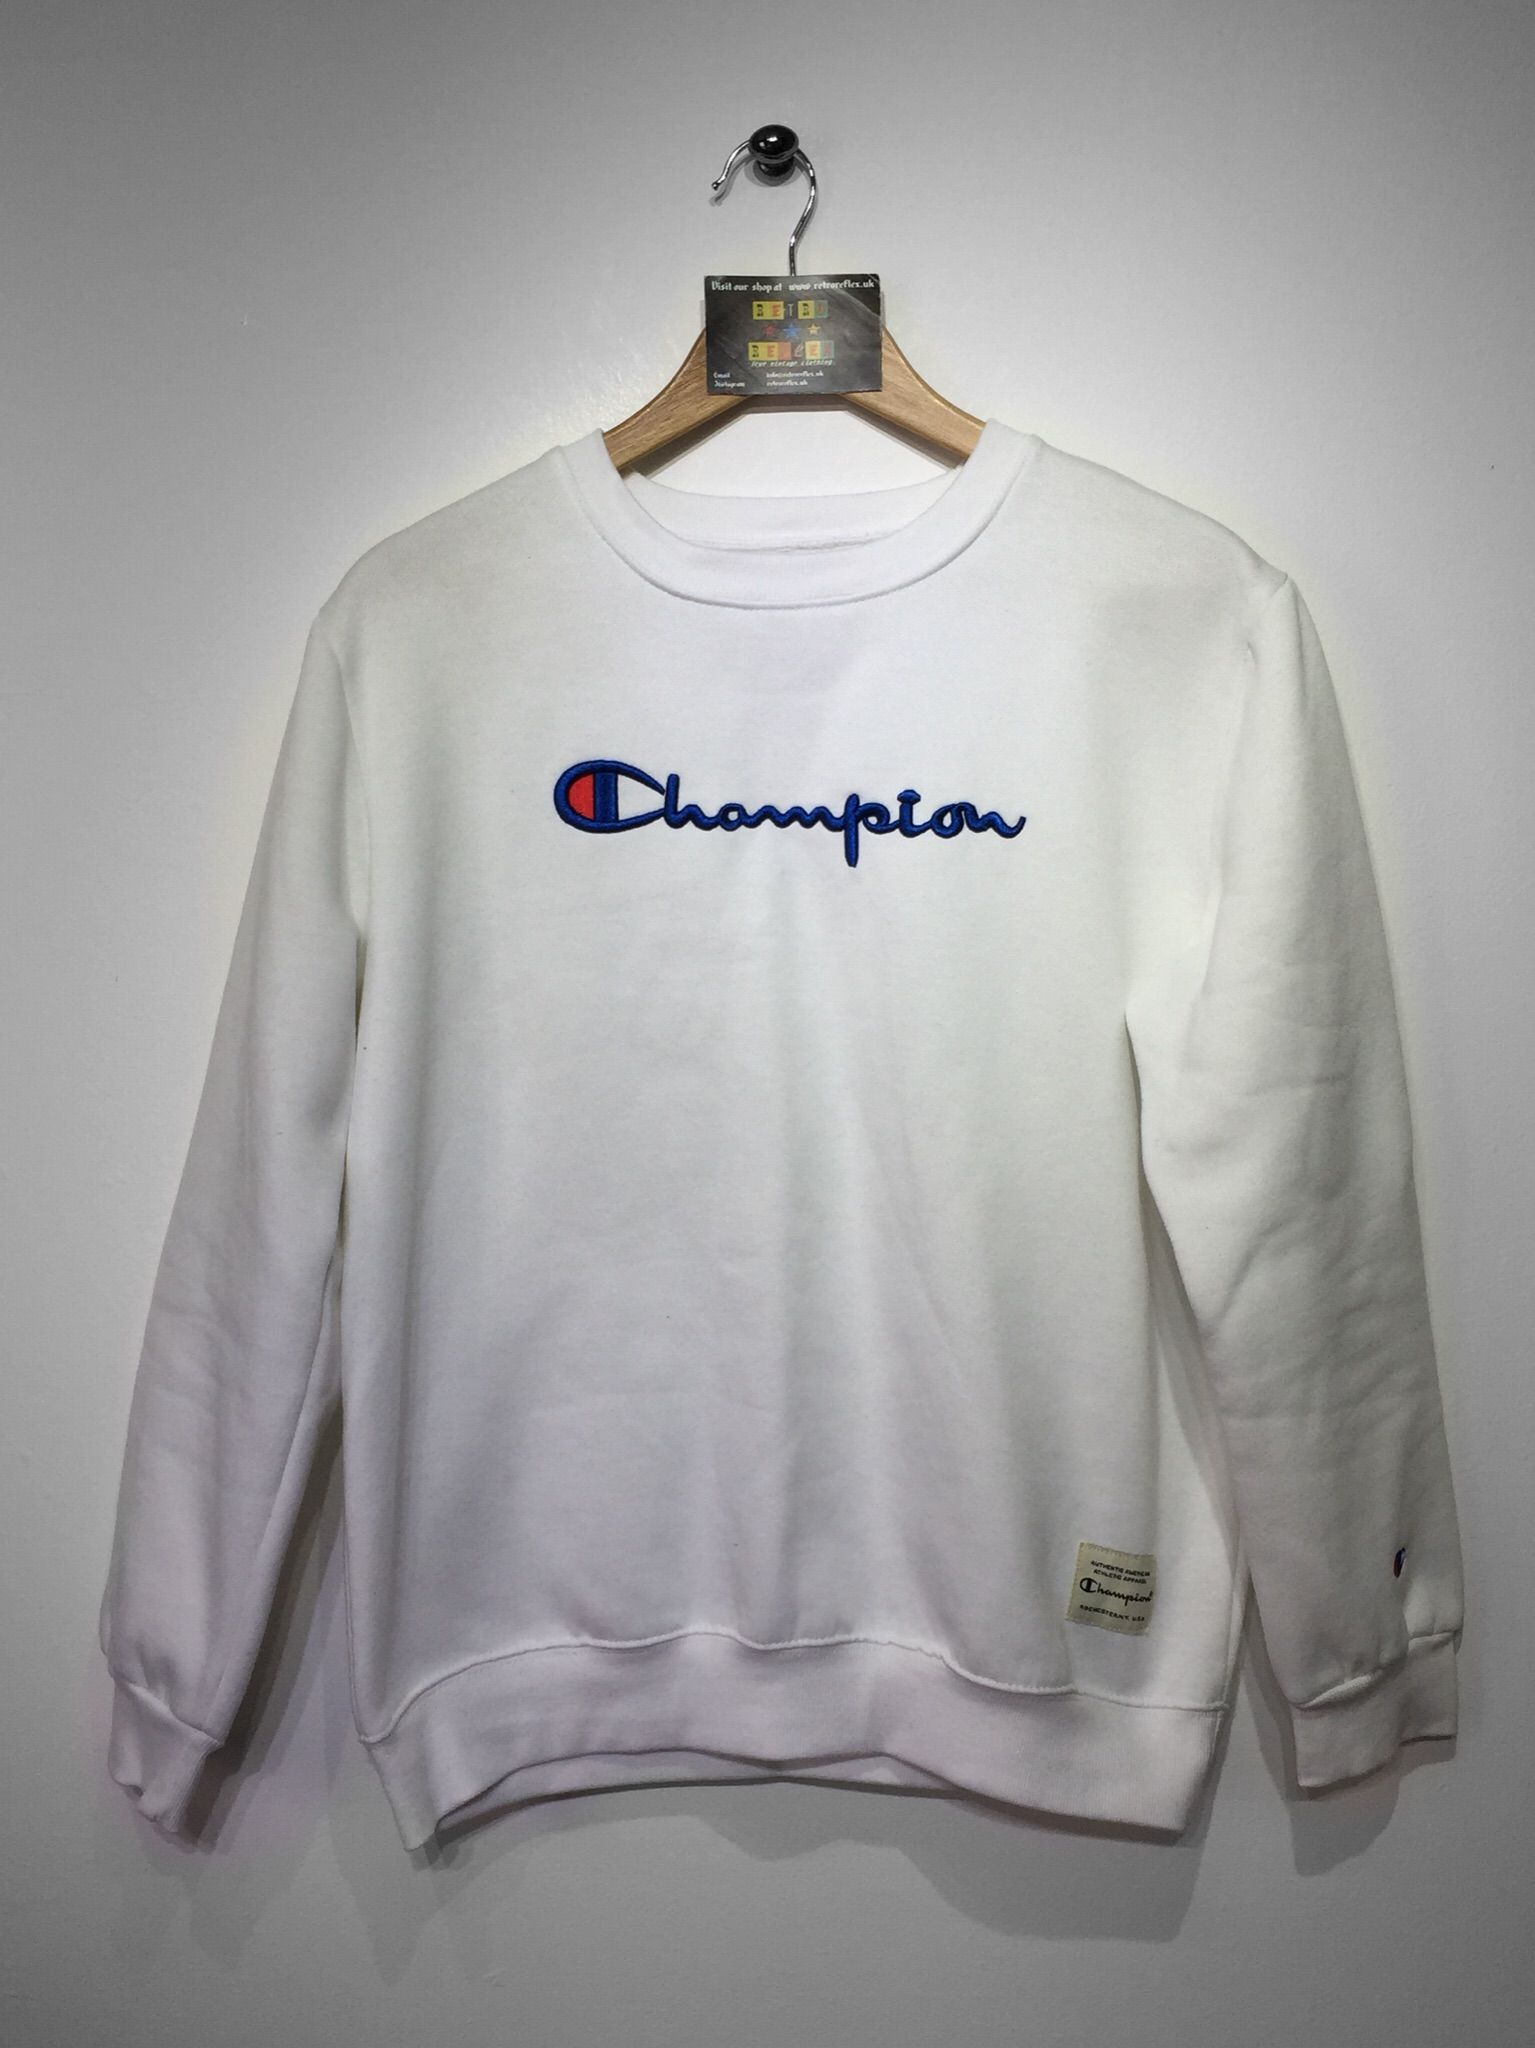 champion shirts uk